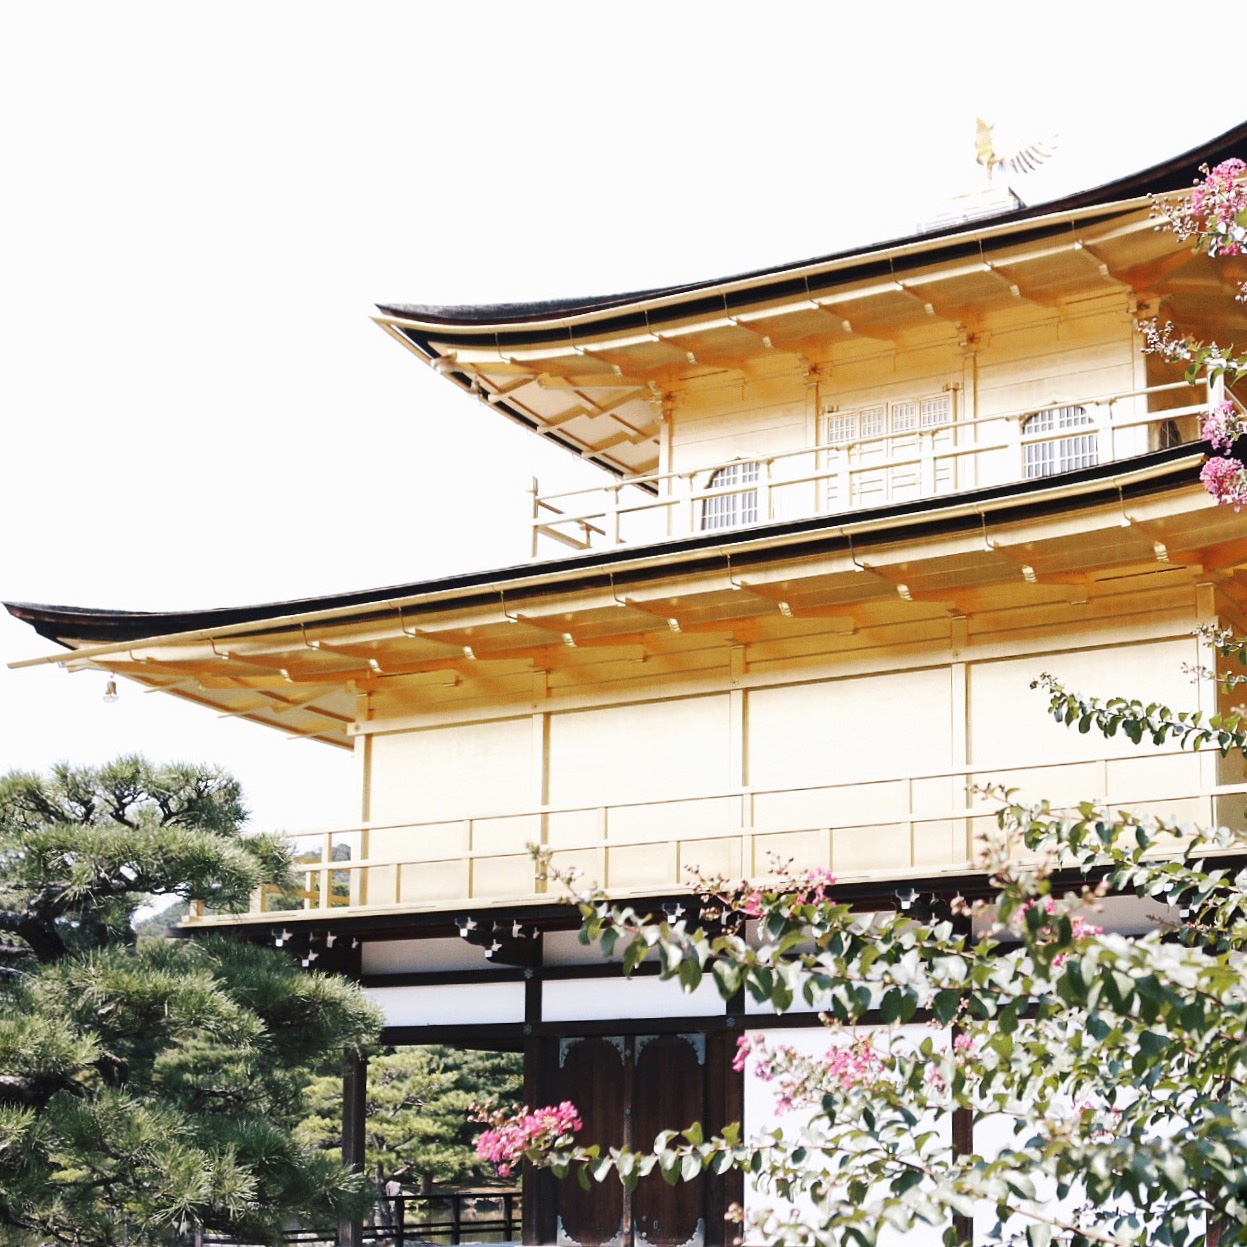 28 #Giappotour with Blueberry Travel: best places to see in Kyoto during a day.